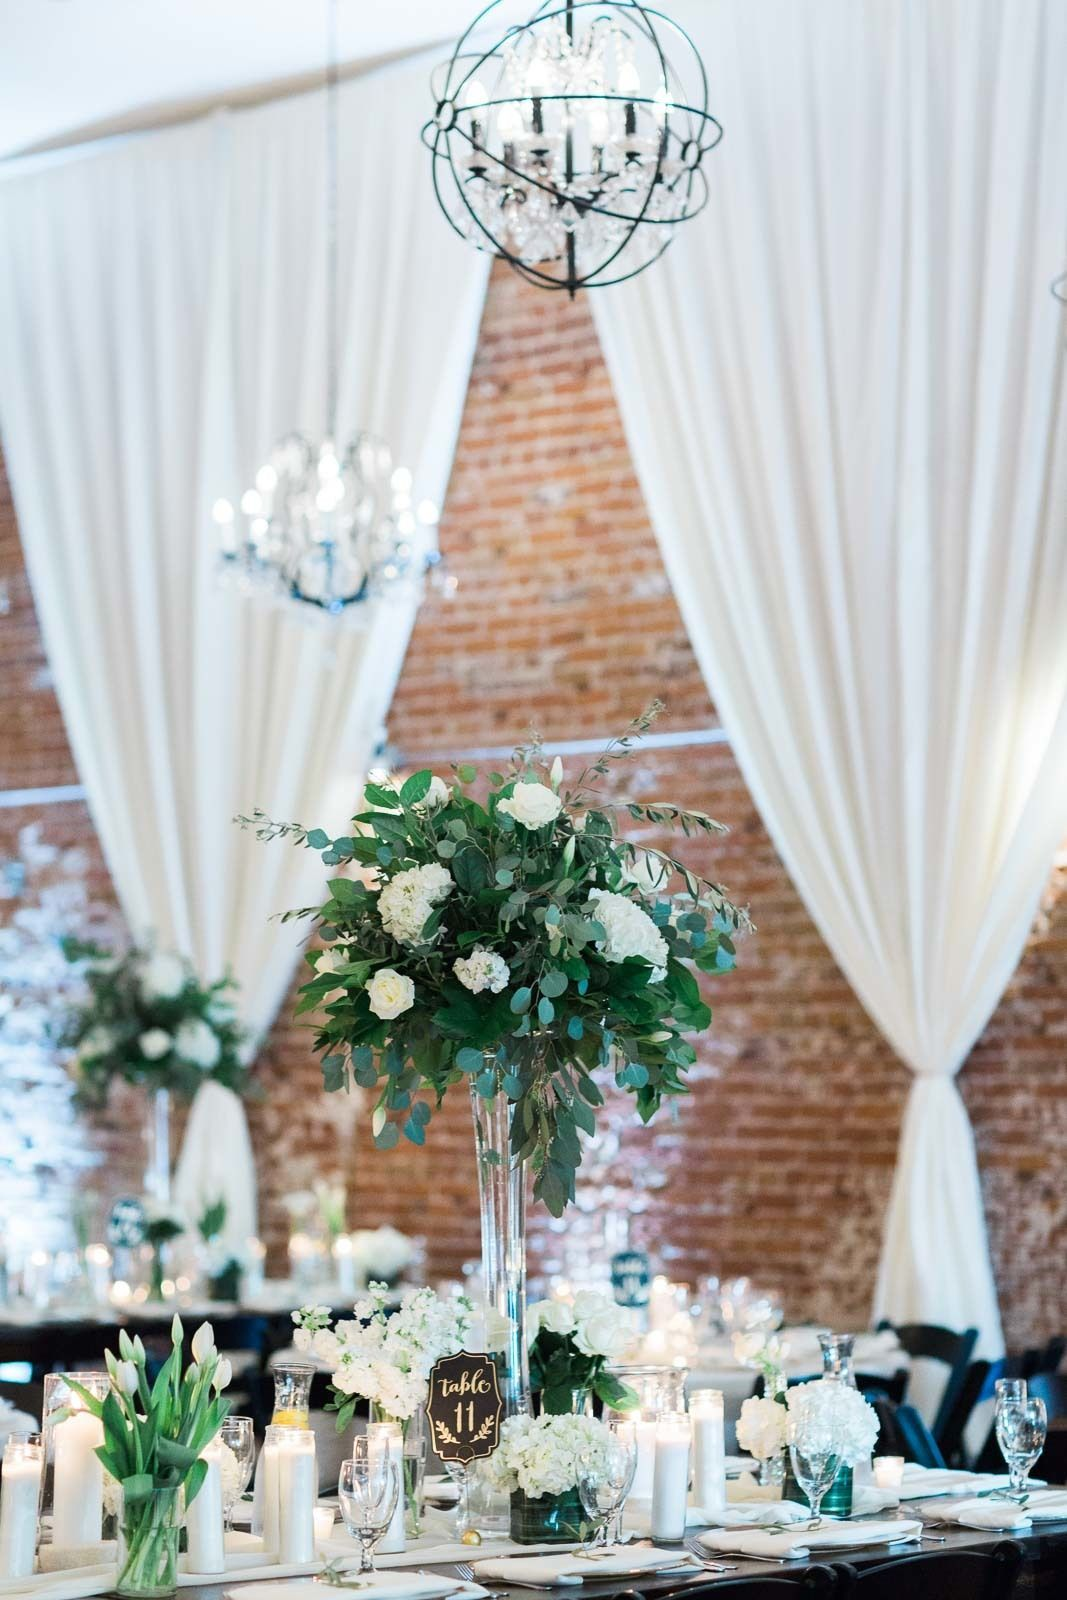 Black and white wedding decor ideas  This Bride Had A Vision For Her Wedding And We LOVE How It Came Out